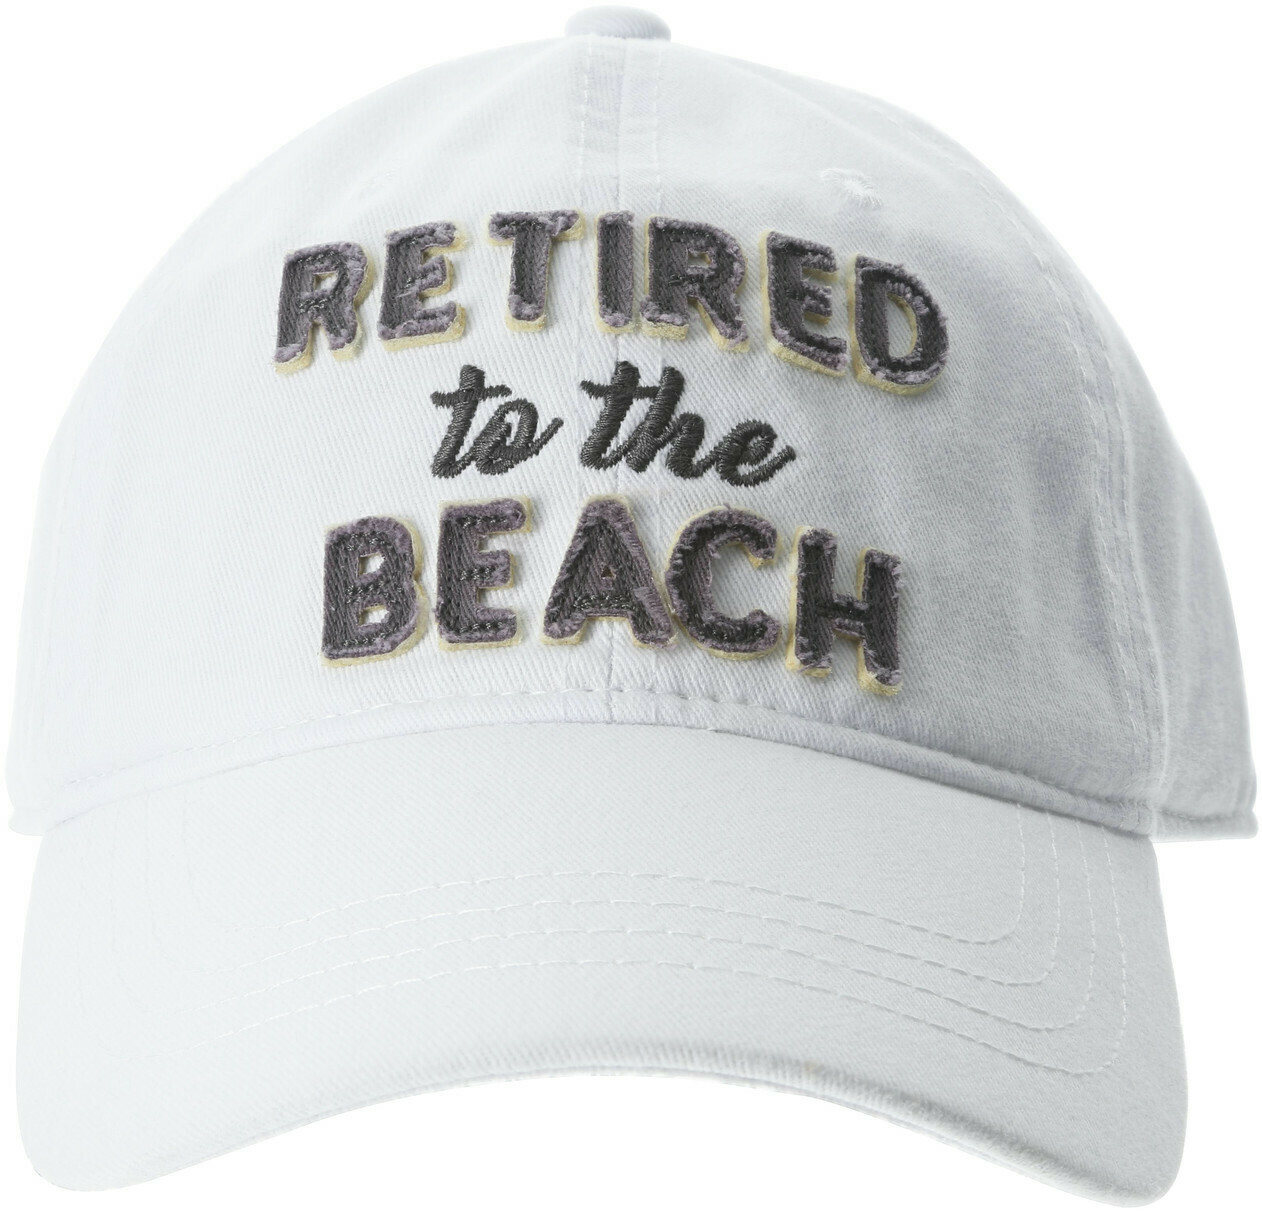 Retired to the Beach Hat